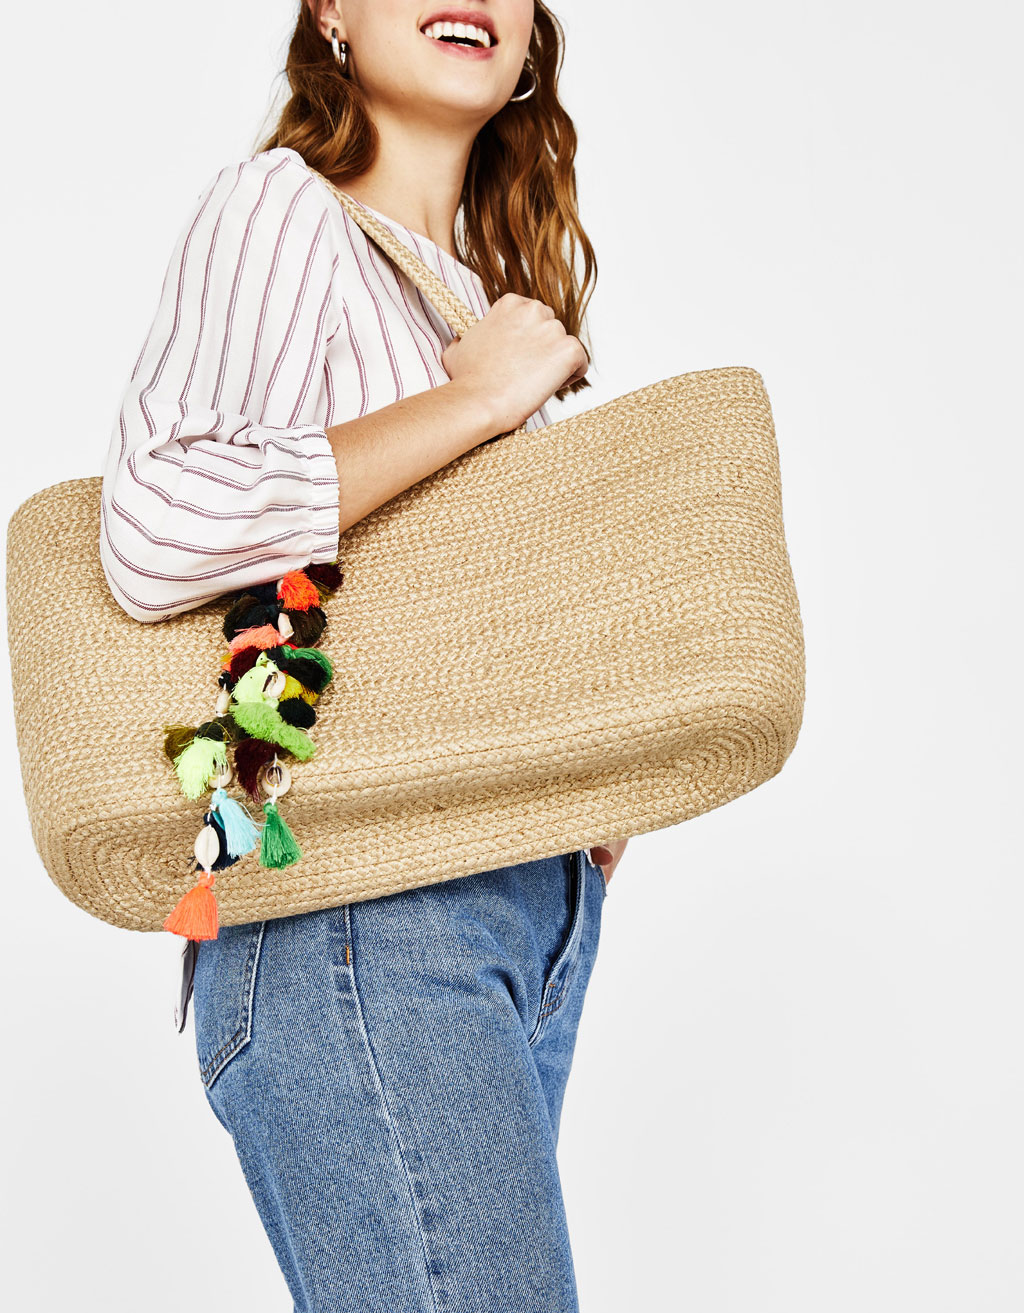 Jute tote bag with tassels